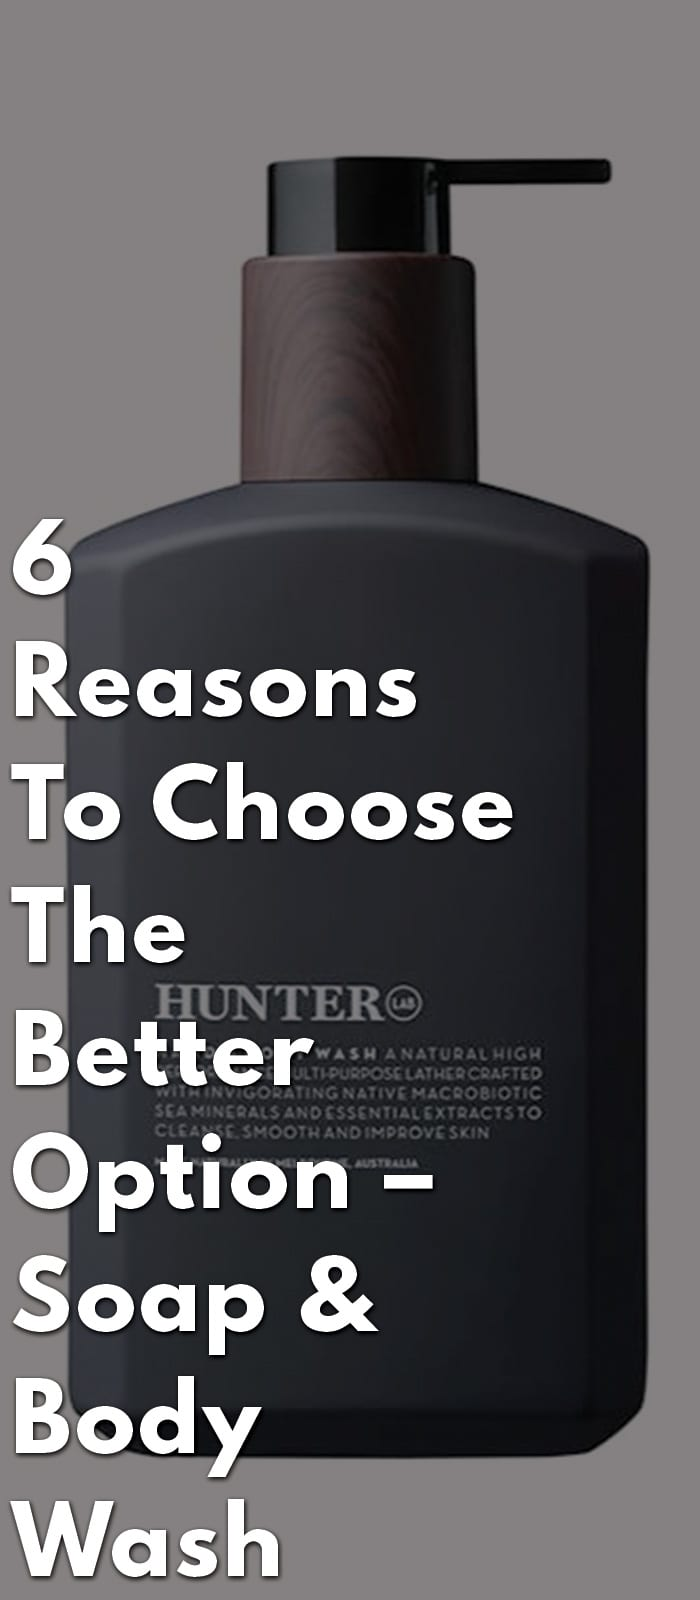 6-Reasons-To-Choose-The-Better-Option-–-Soap-&-Body-Wash